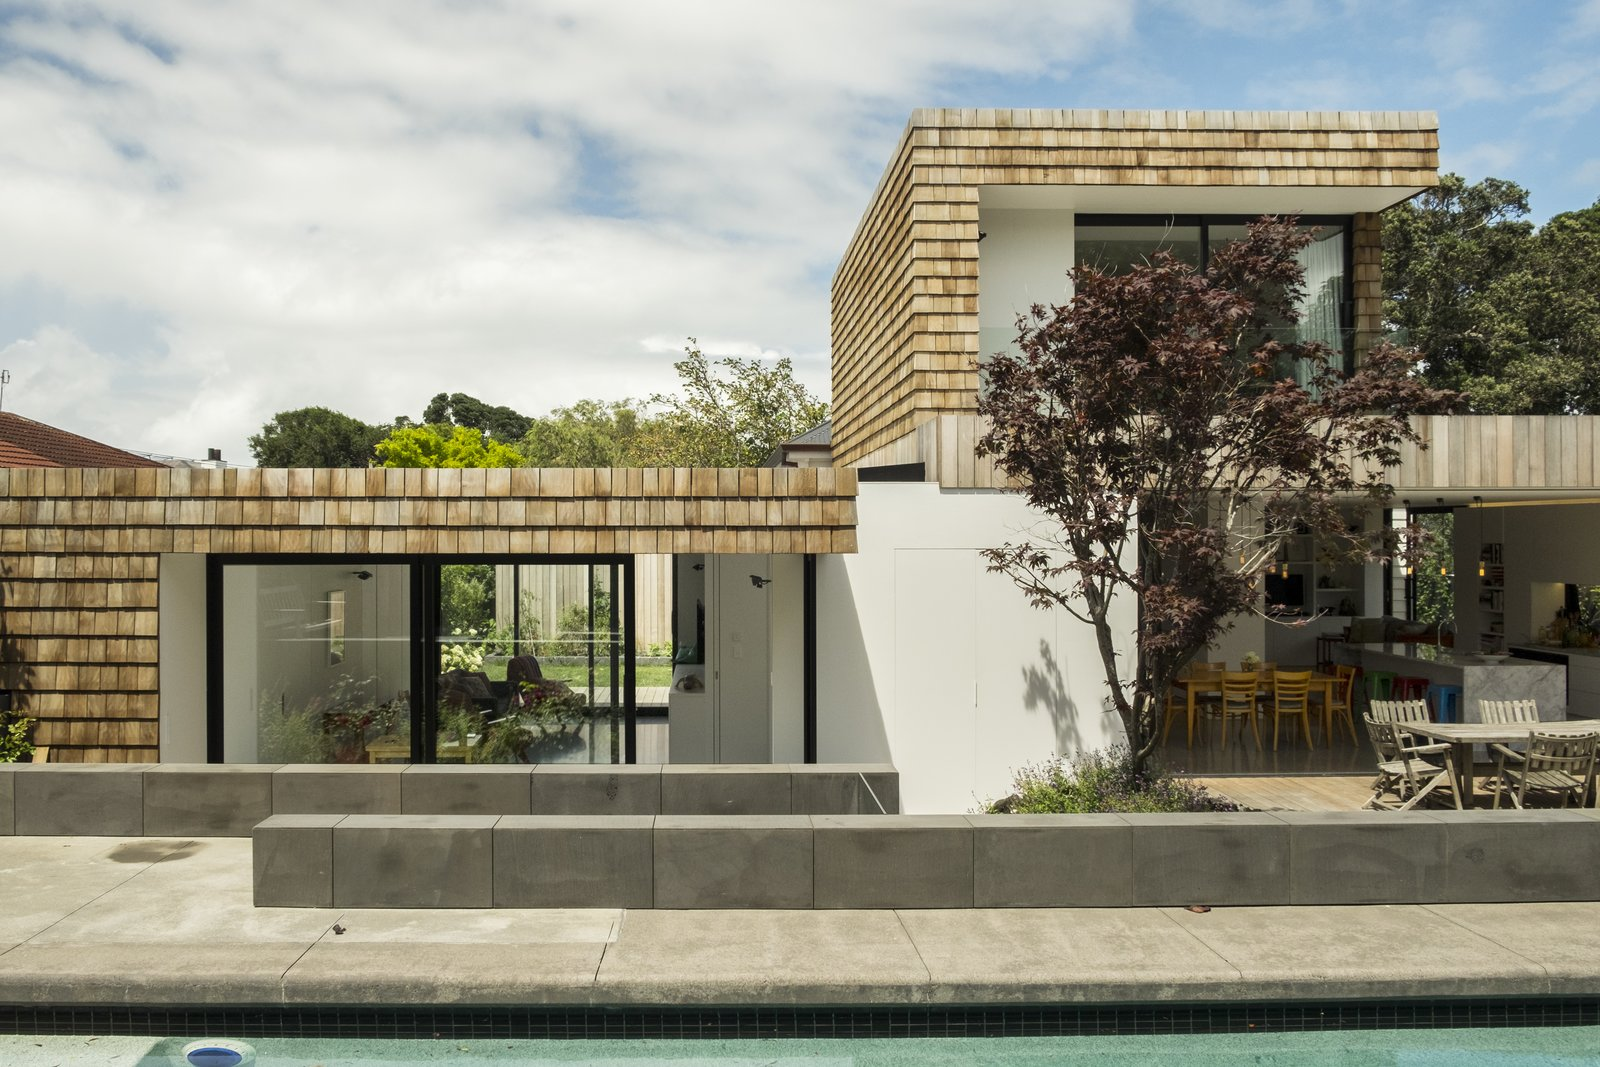 Viewed from the swimming pool, the new scheme largely obscures the original house—appearing as a new-build, modern house of a composition reminiscent of the mid-twentieth-century Case Study Houses.